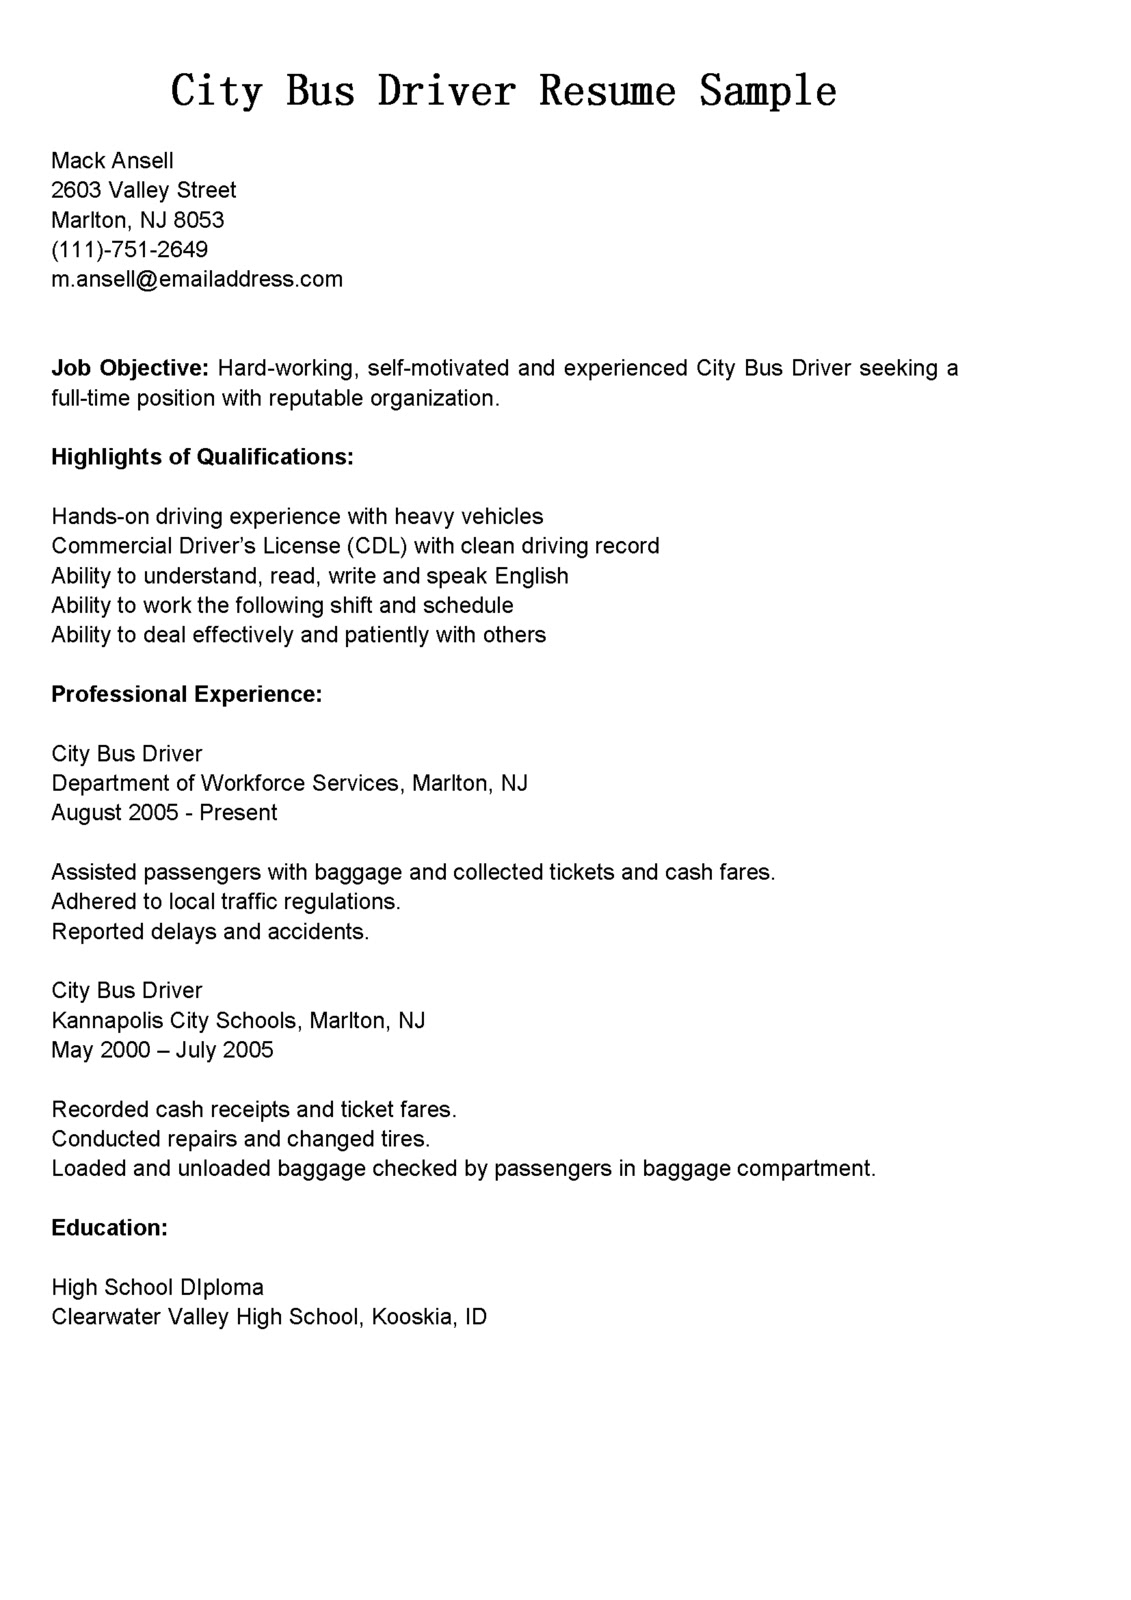 resume example for bus driver printable job application forms resume example for bus driver best bus driver resume example livecareer driver resumes city bus driver